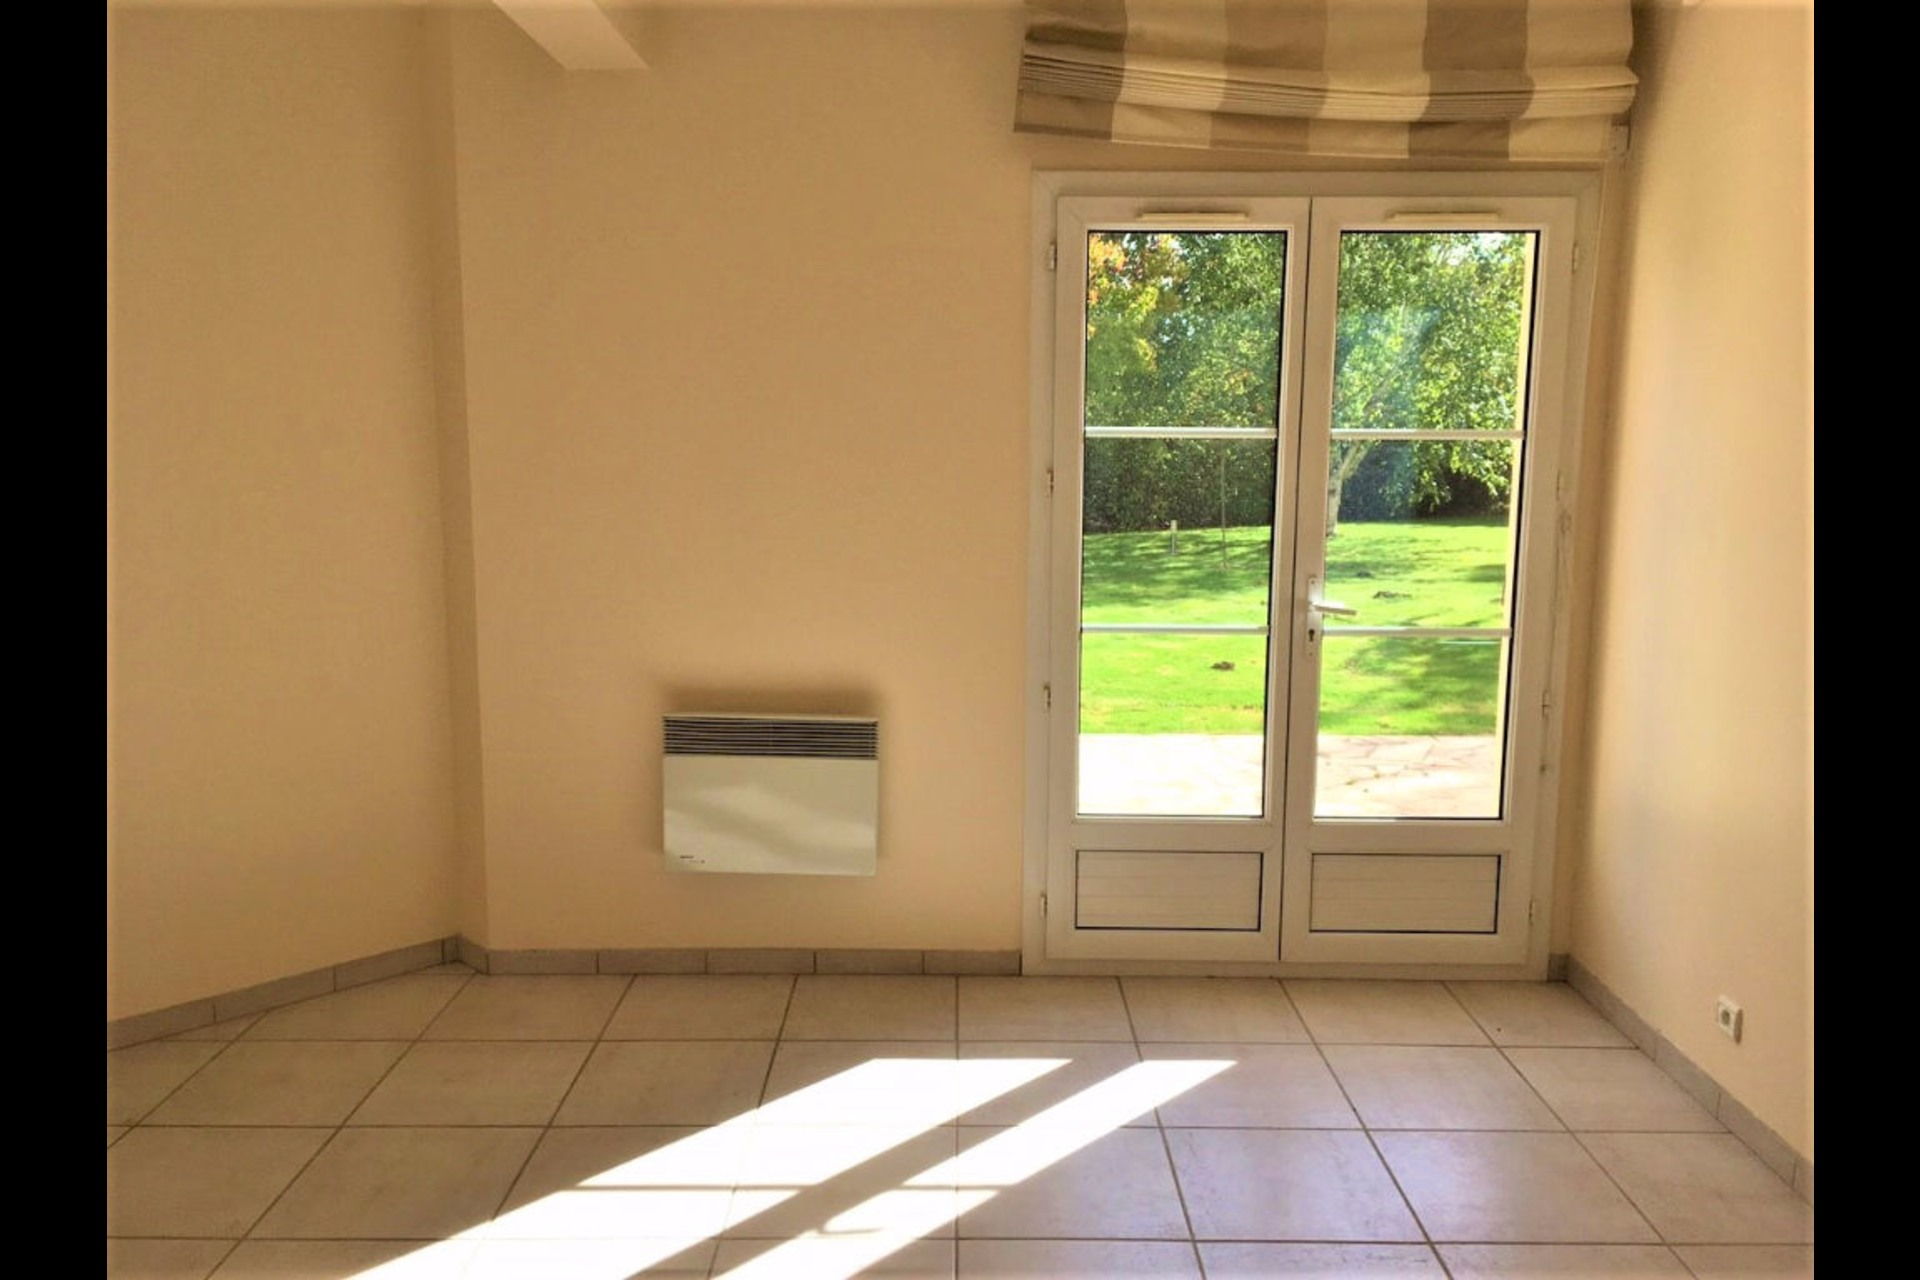 image 7 - House For rent saint nom la breteche - 7 rooms